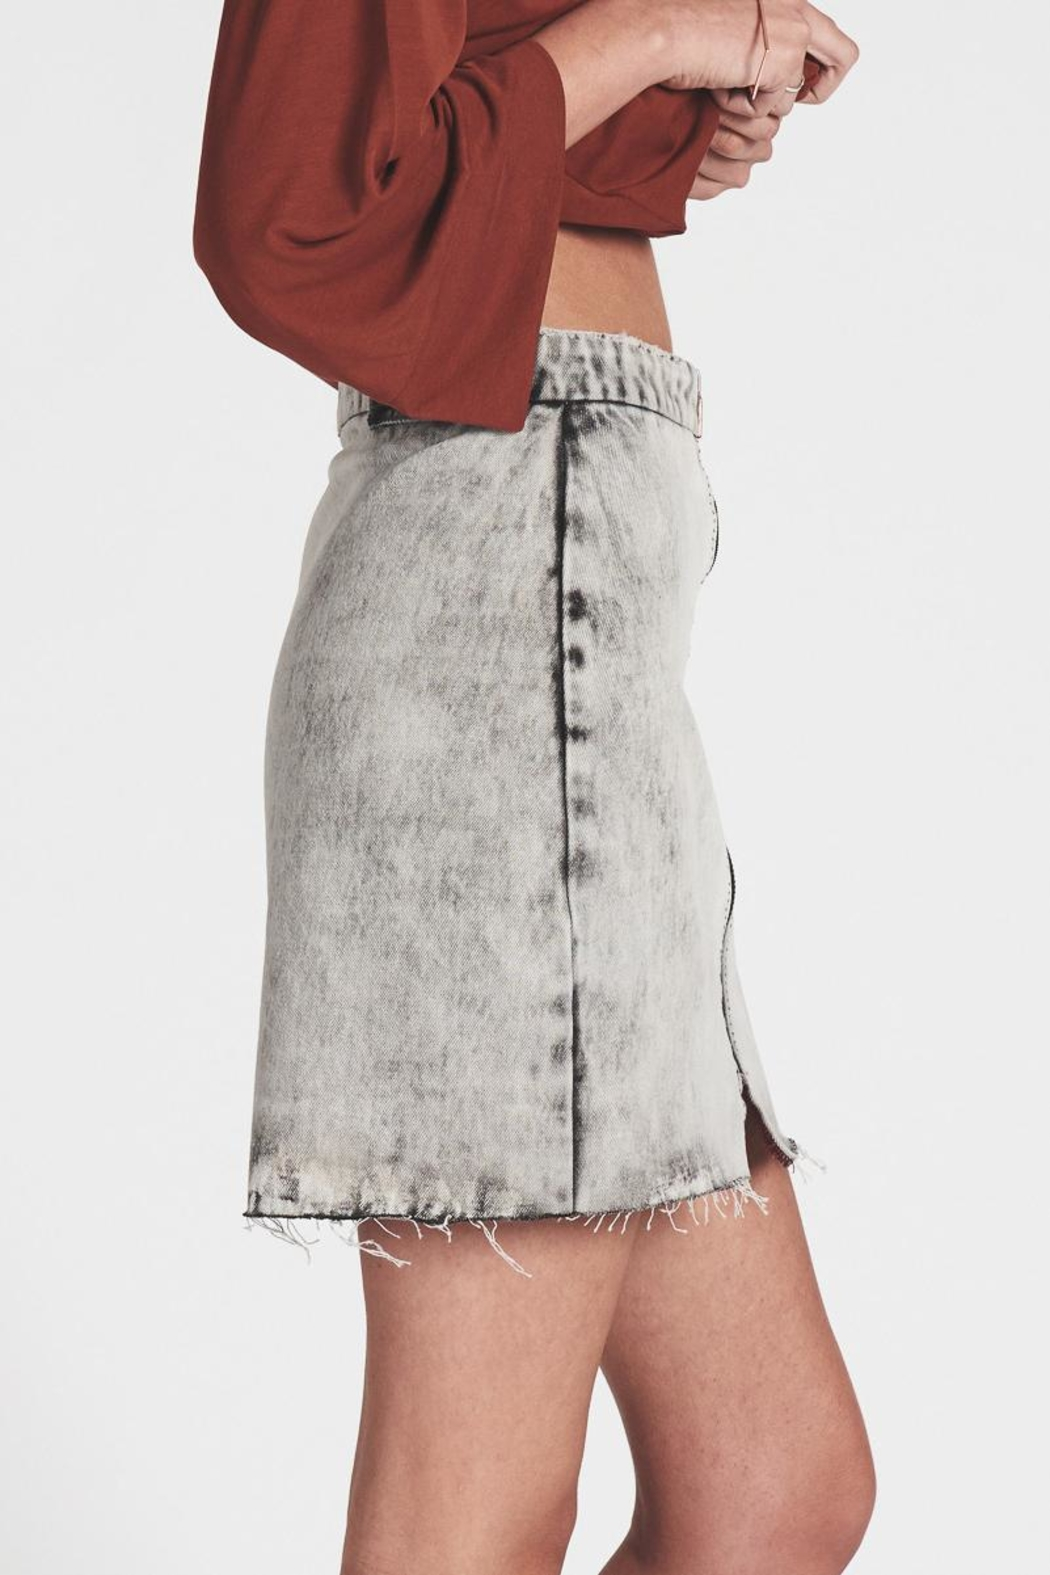 f4ce9a70c One Teaspoon Vixen Denim Skirt from Hudson Valley by Bfree — Shoptiques